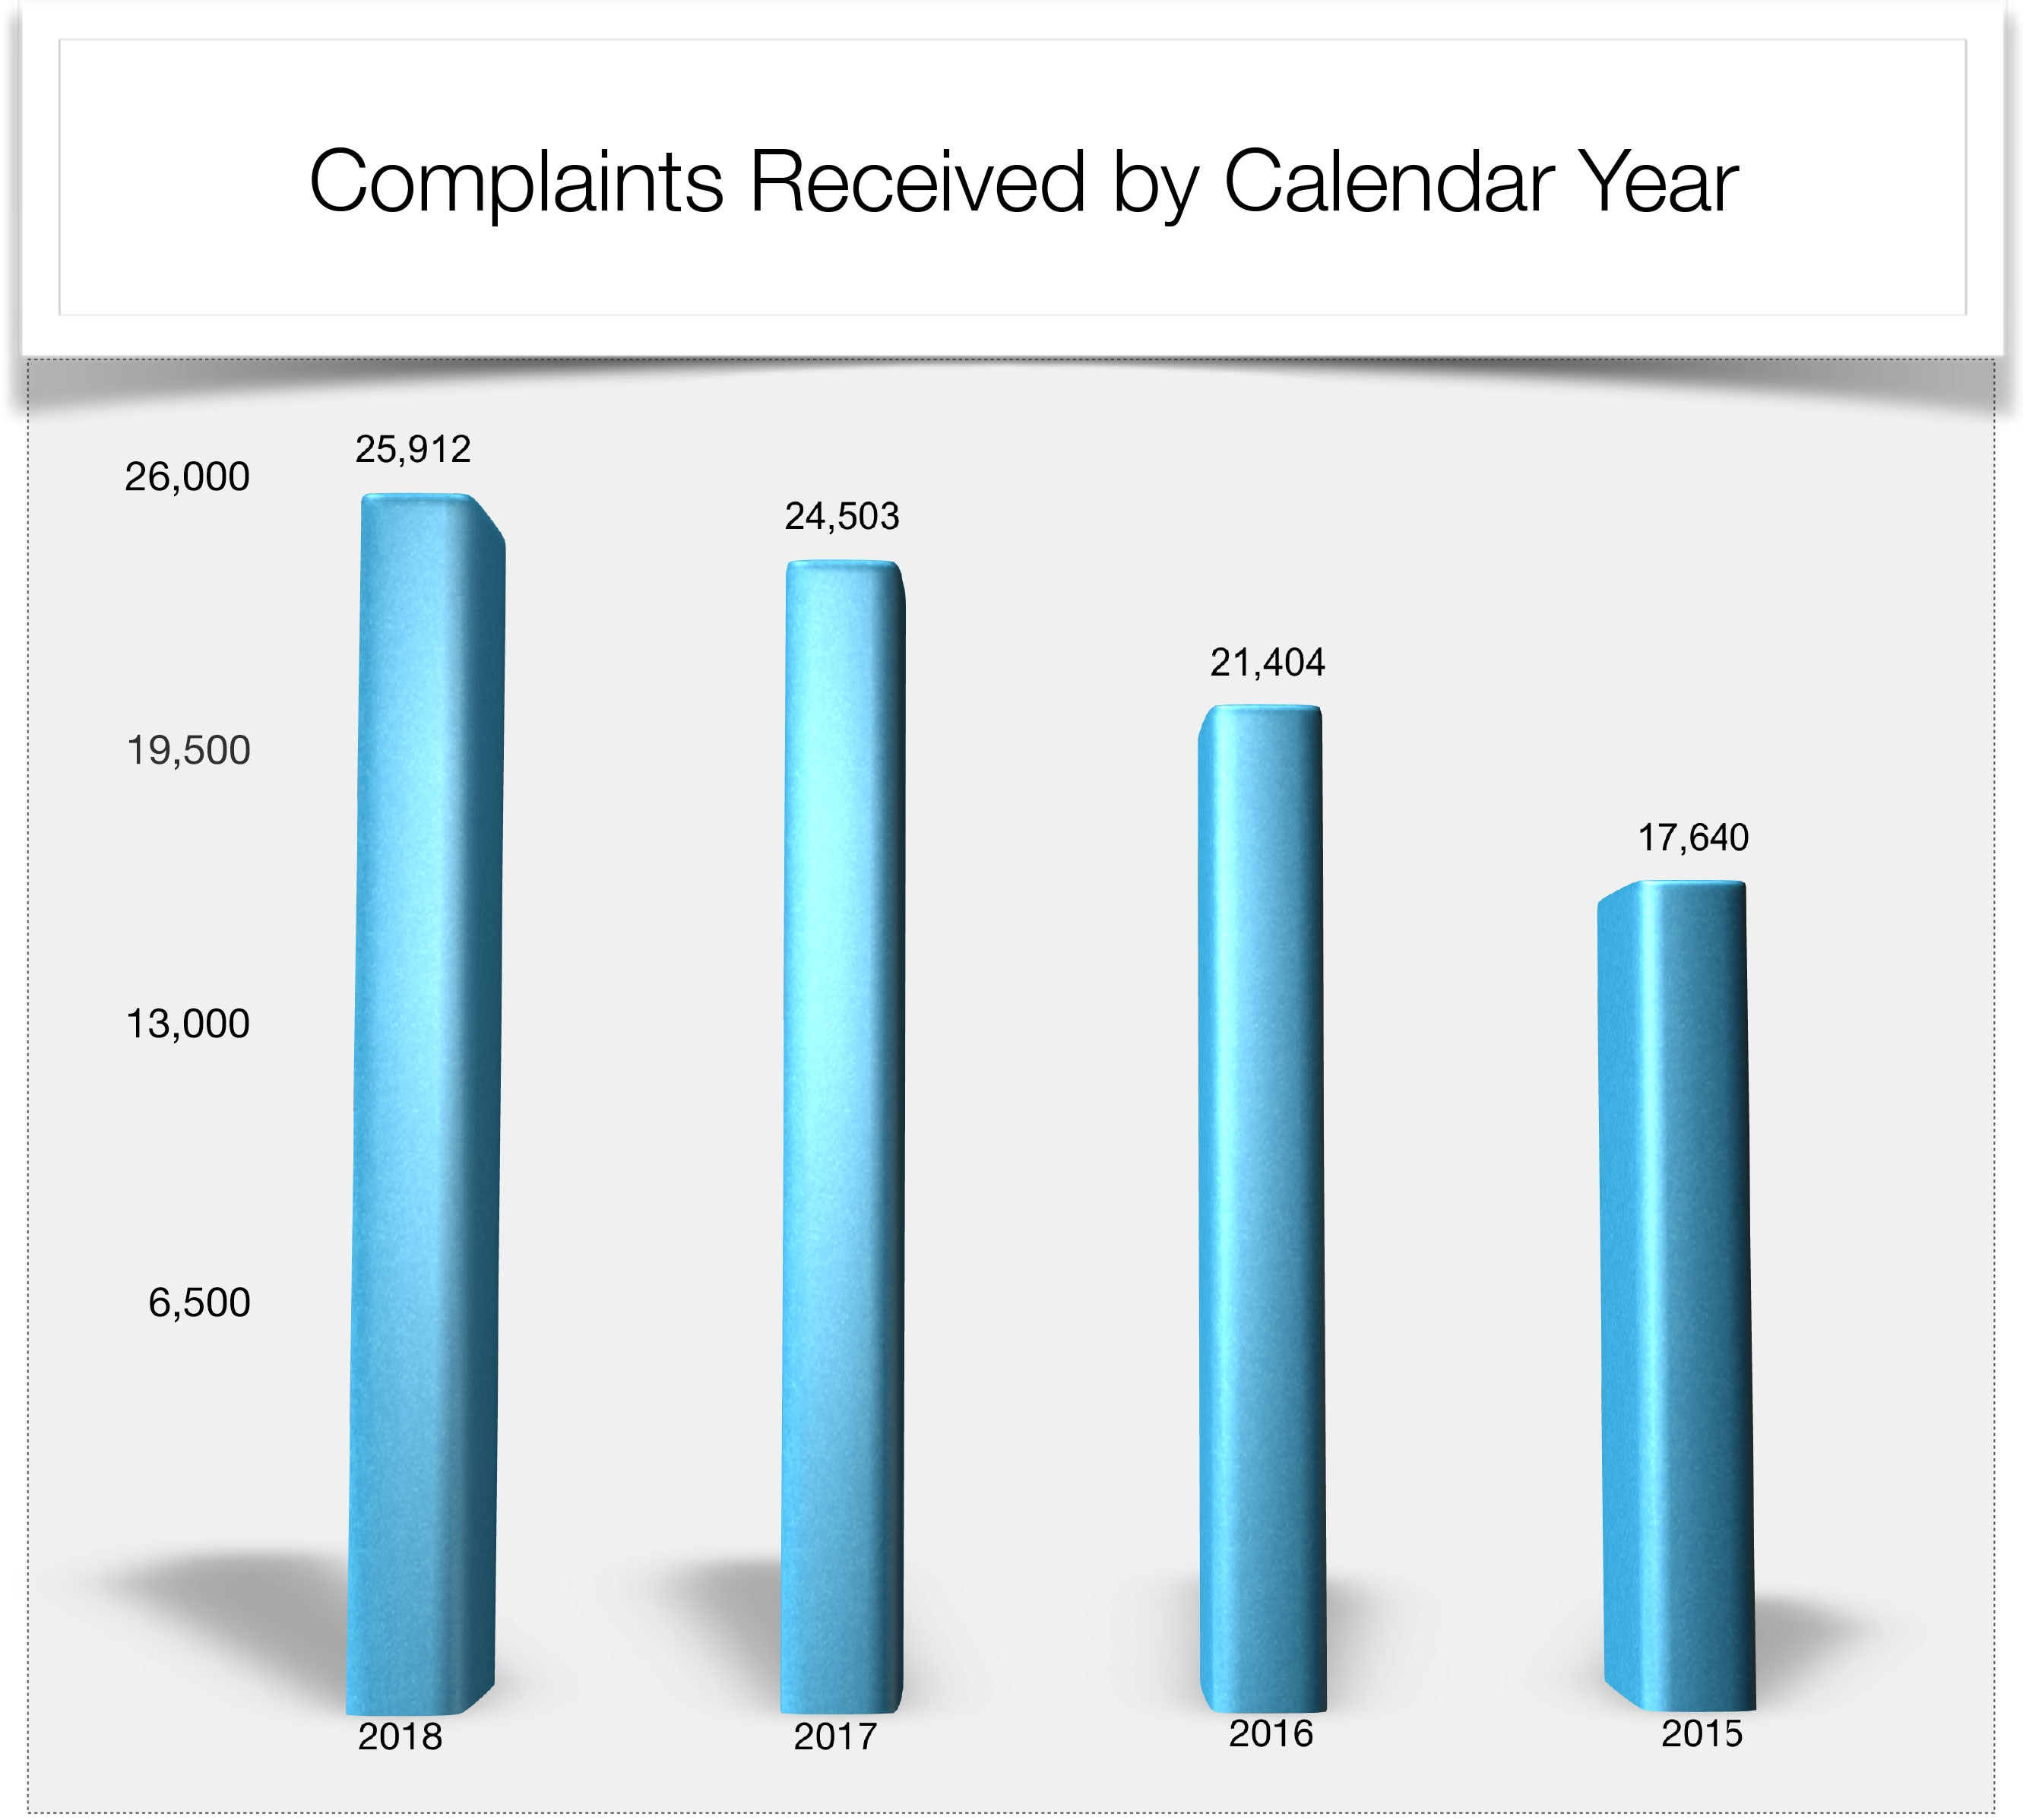 Complaints Received by Calendar Year 2015 - 2018